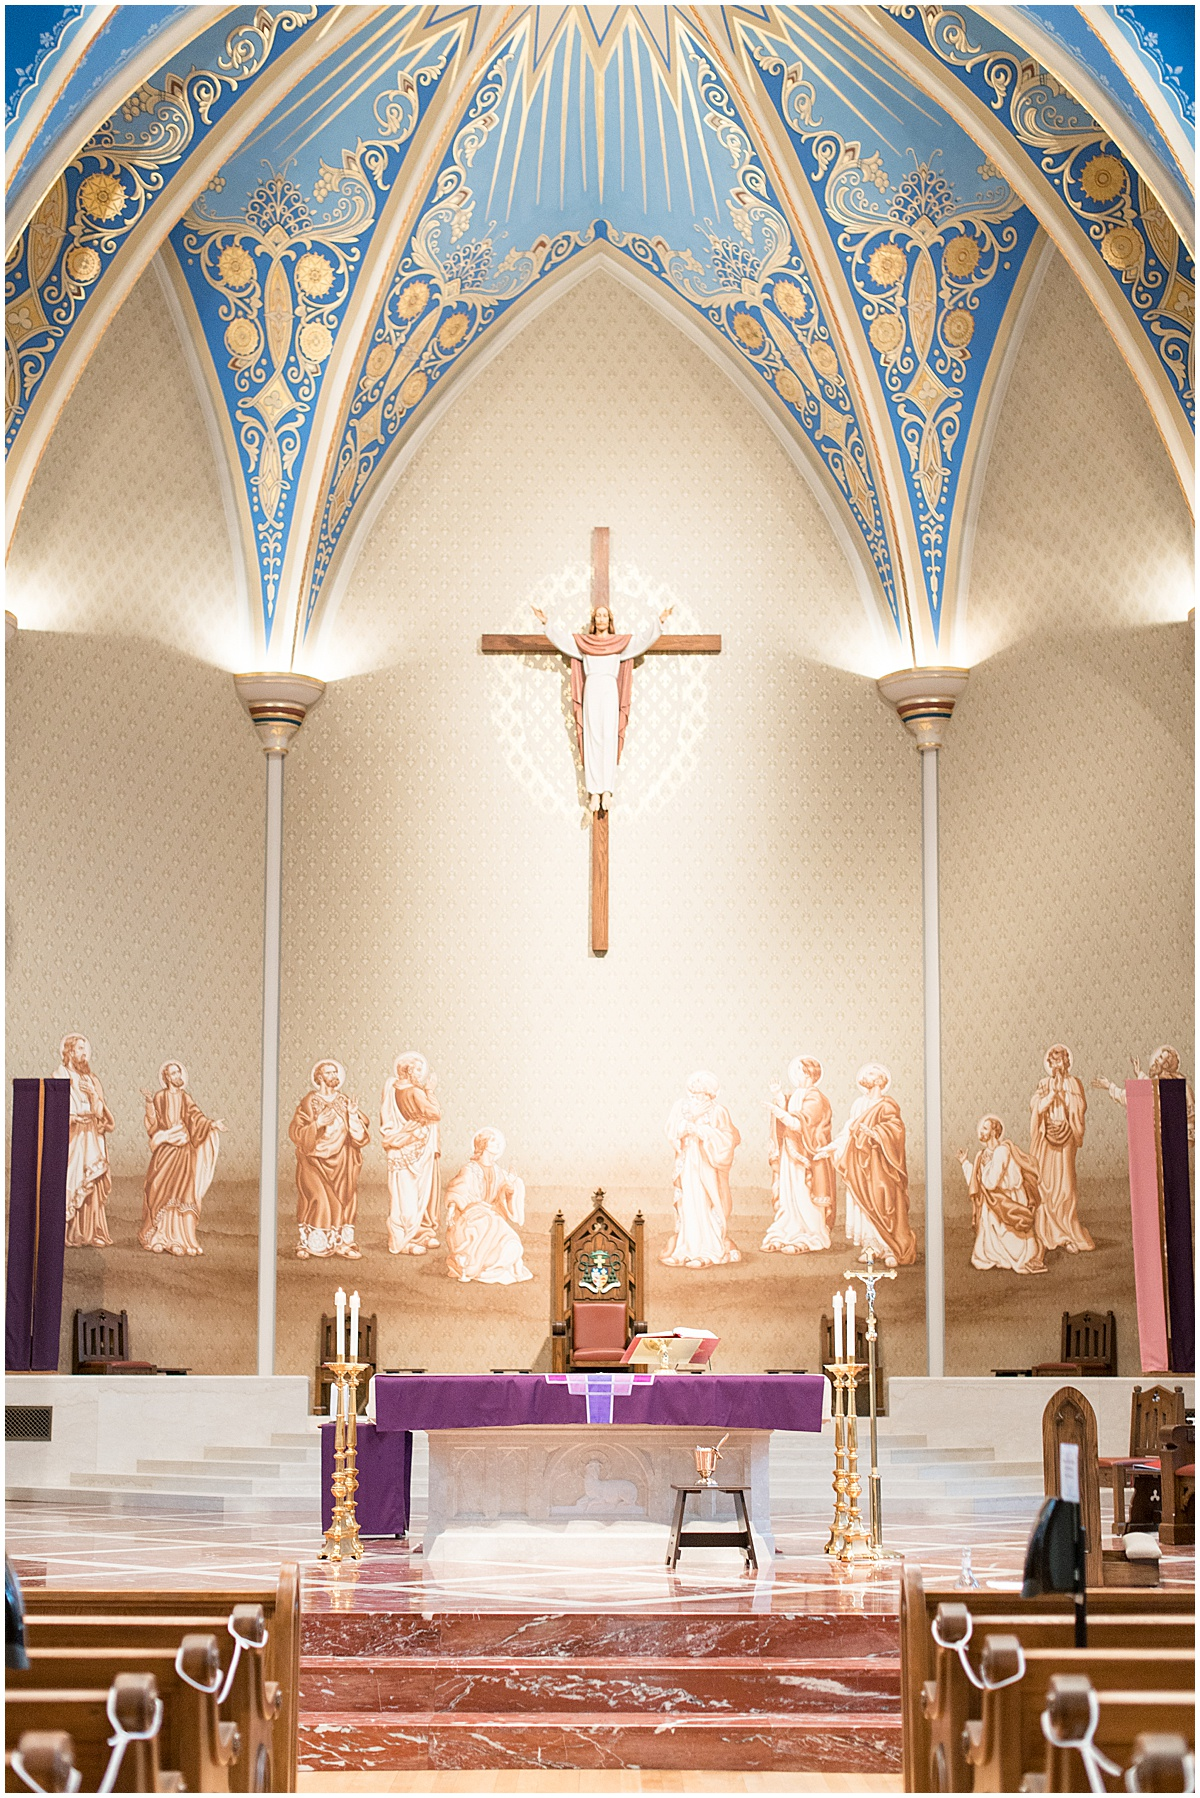 Cathedral of Saint Mary of the Immaculate Conception in Lafayette, Indiana